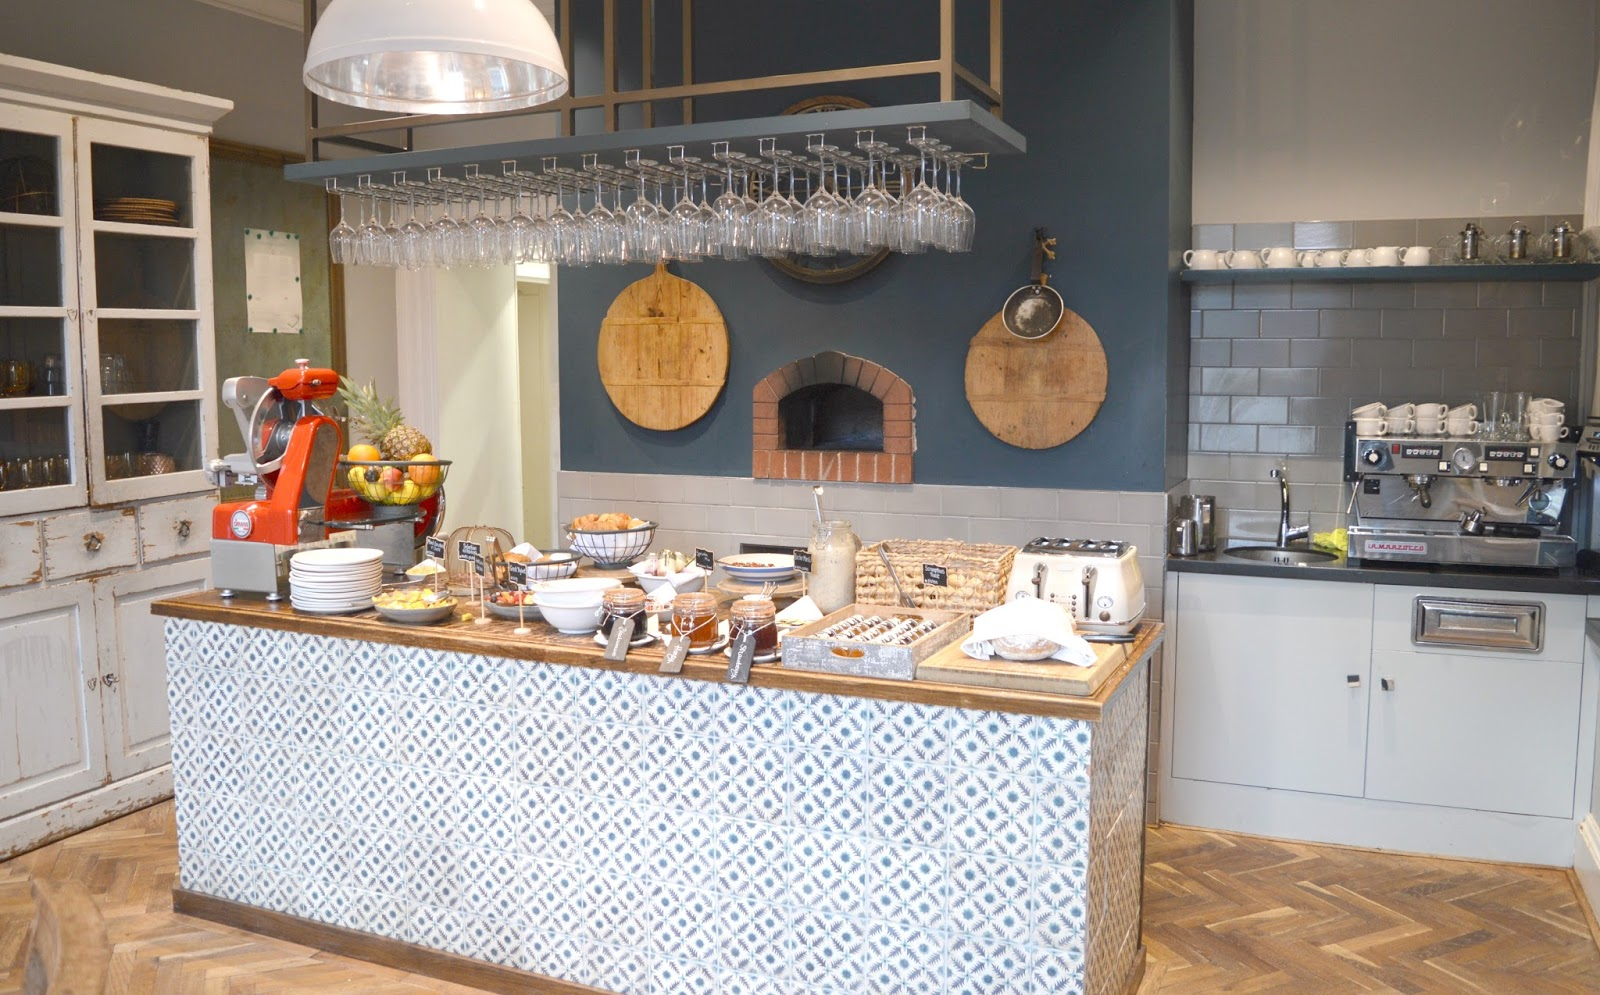 Cosy Hotel in the Cotswolds - The Painswick Breakfast